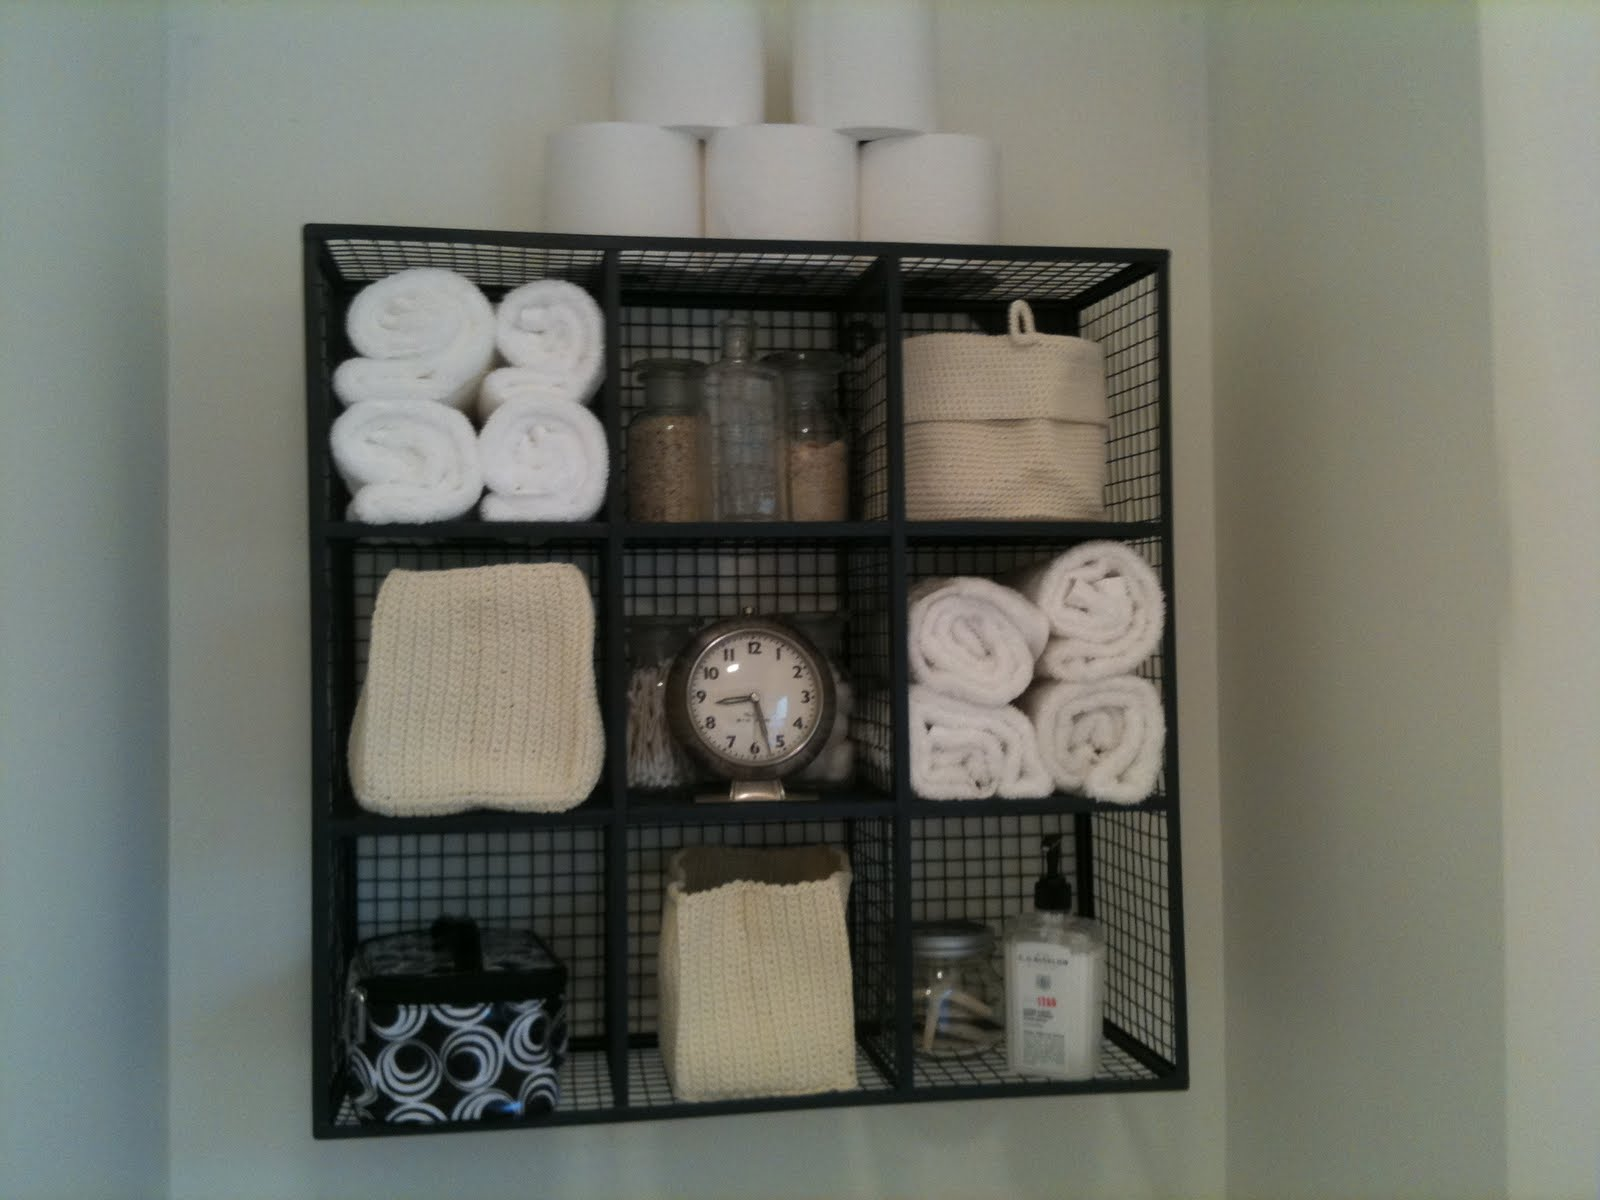 Model Bathroom Shelf Rack Over Toilet Bath Space Saver Storage Organizer